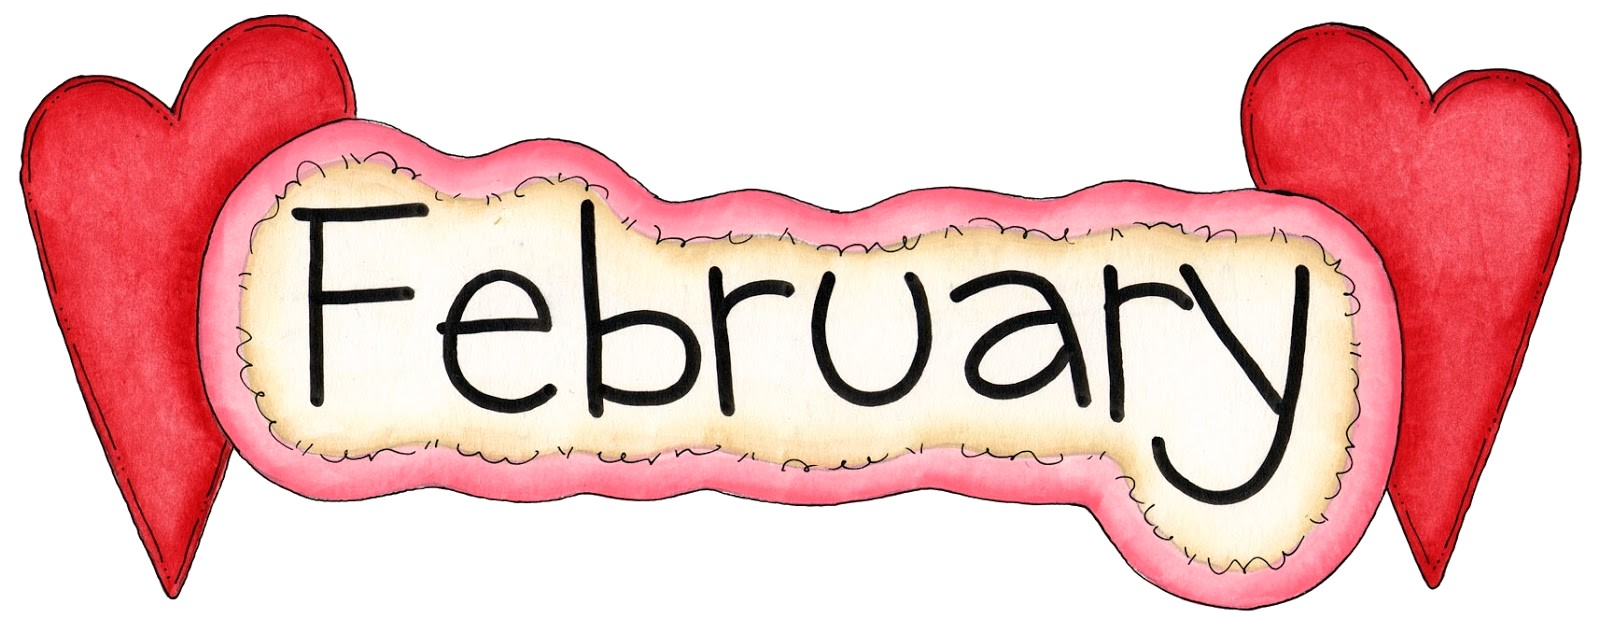 Bing february. Clipart station